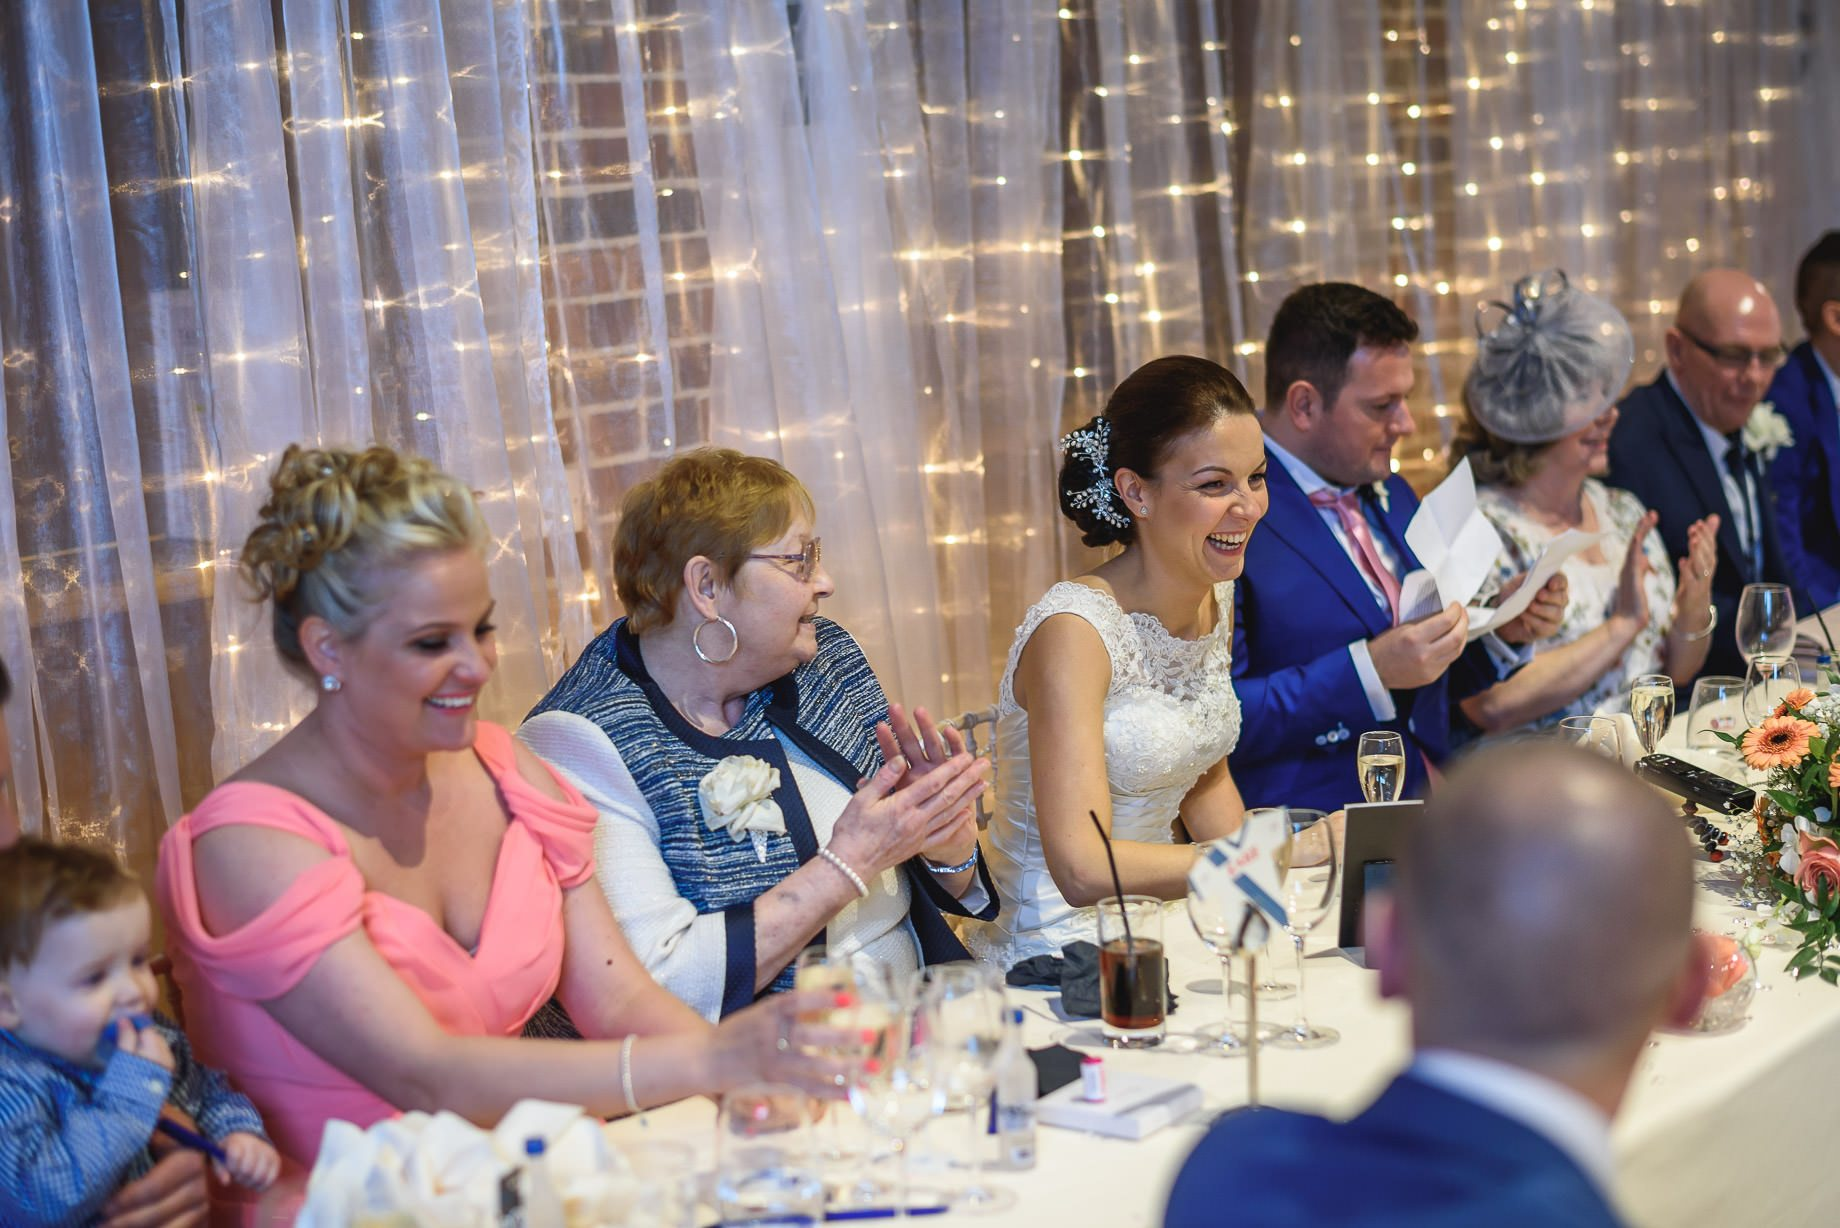 Best wedding photography by Guy Collier - Sheri and Chris (87 of 121)